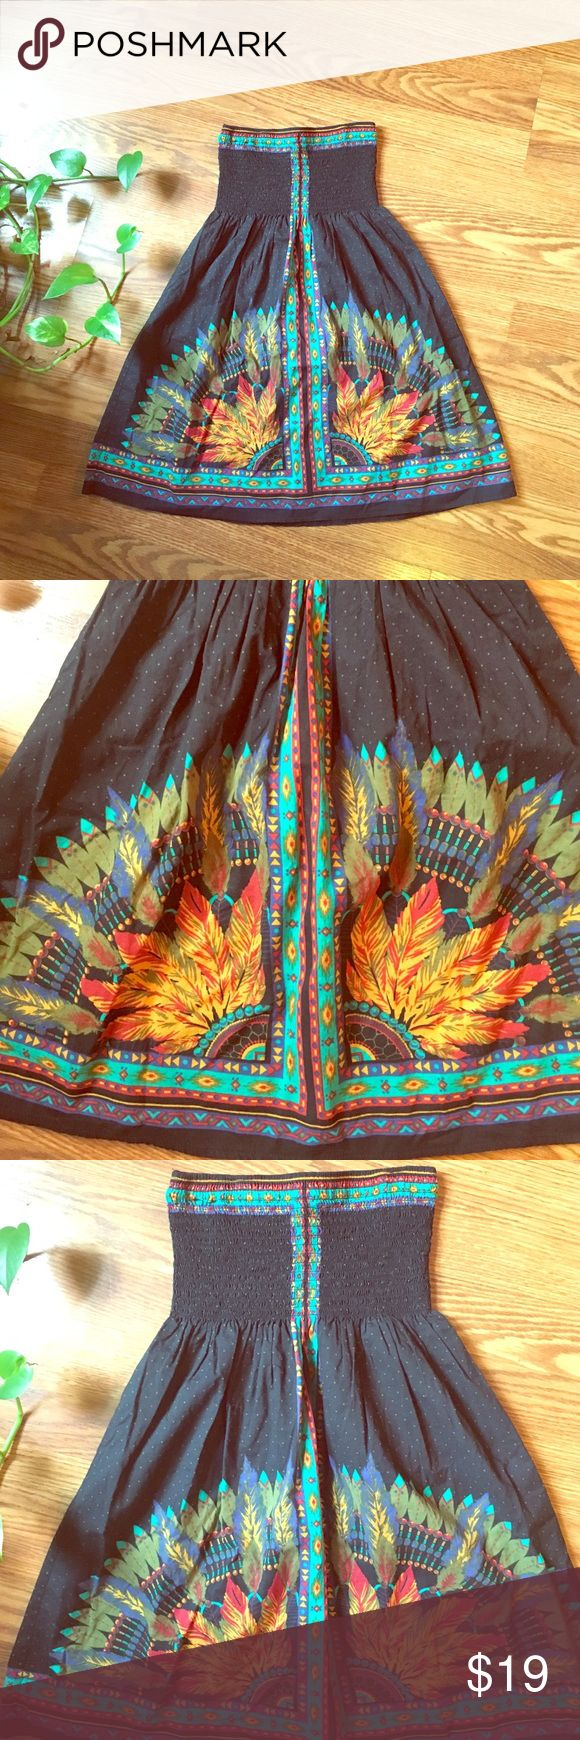 Size S Long Strapless Tribal Print Top Size Small, long Strapless Top. Tribal print with elastic around the bust line for an easy fit Forever 21 Tops Blouses